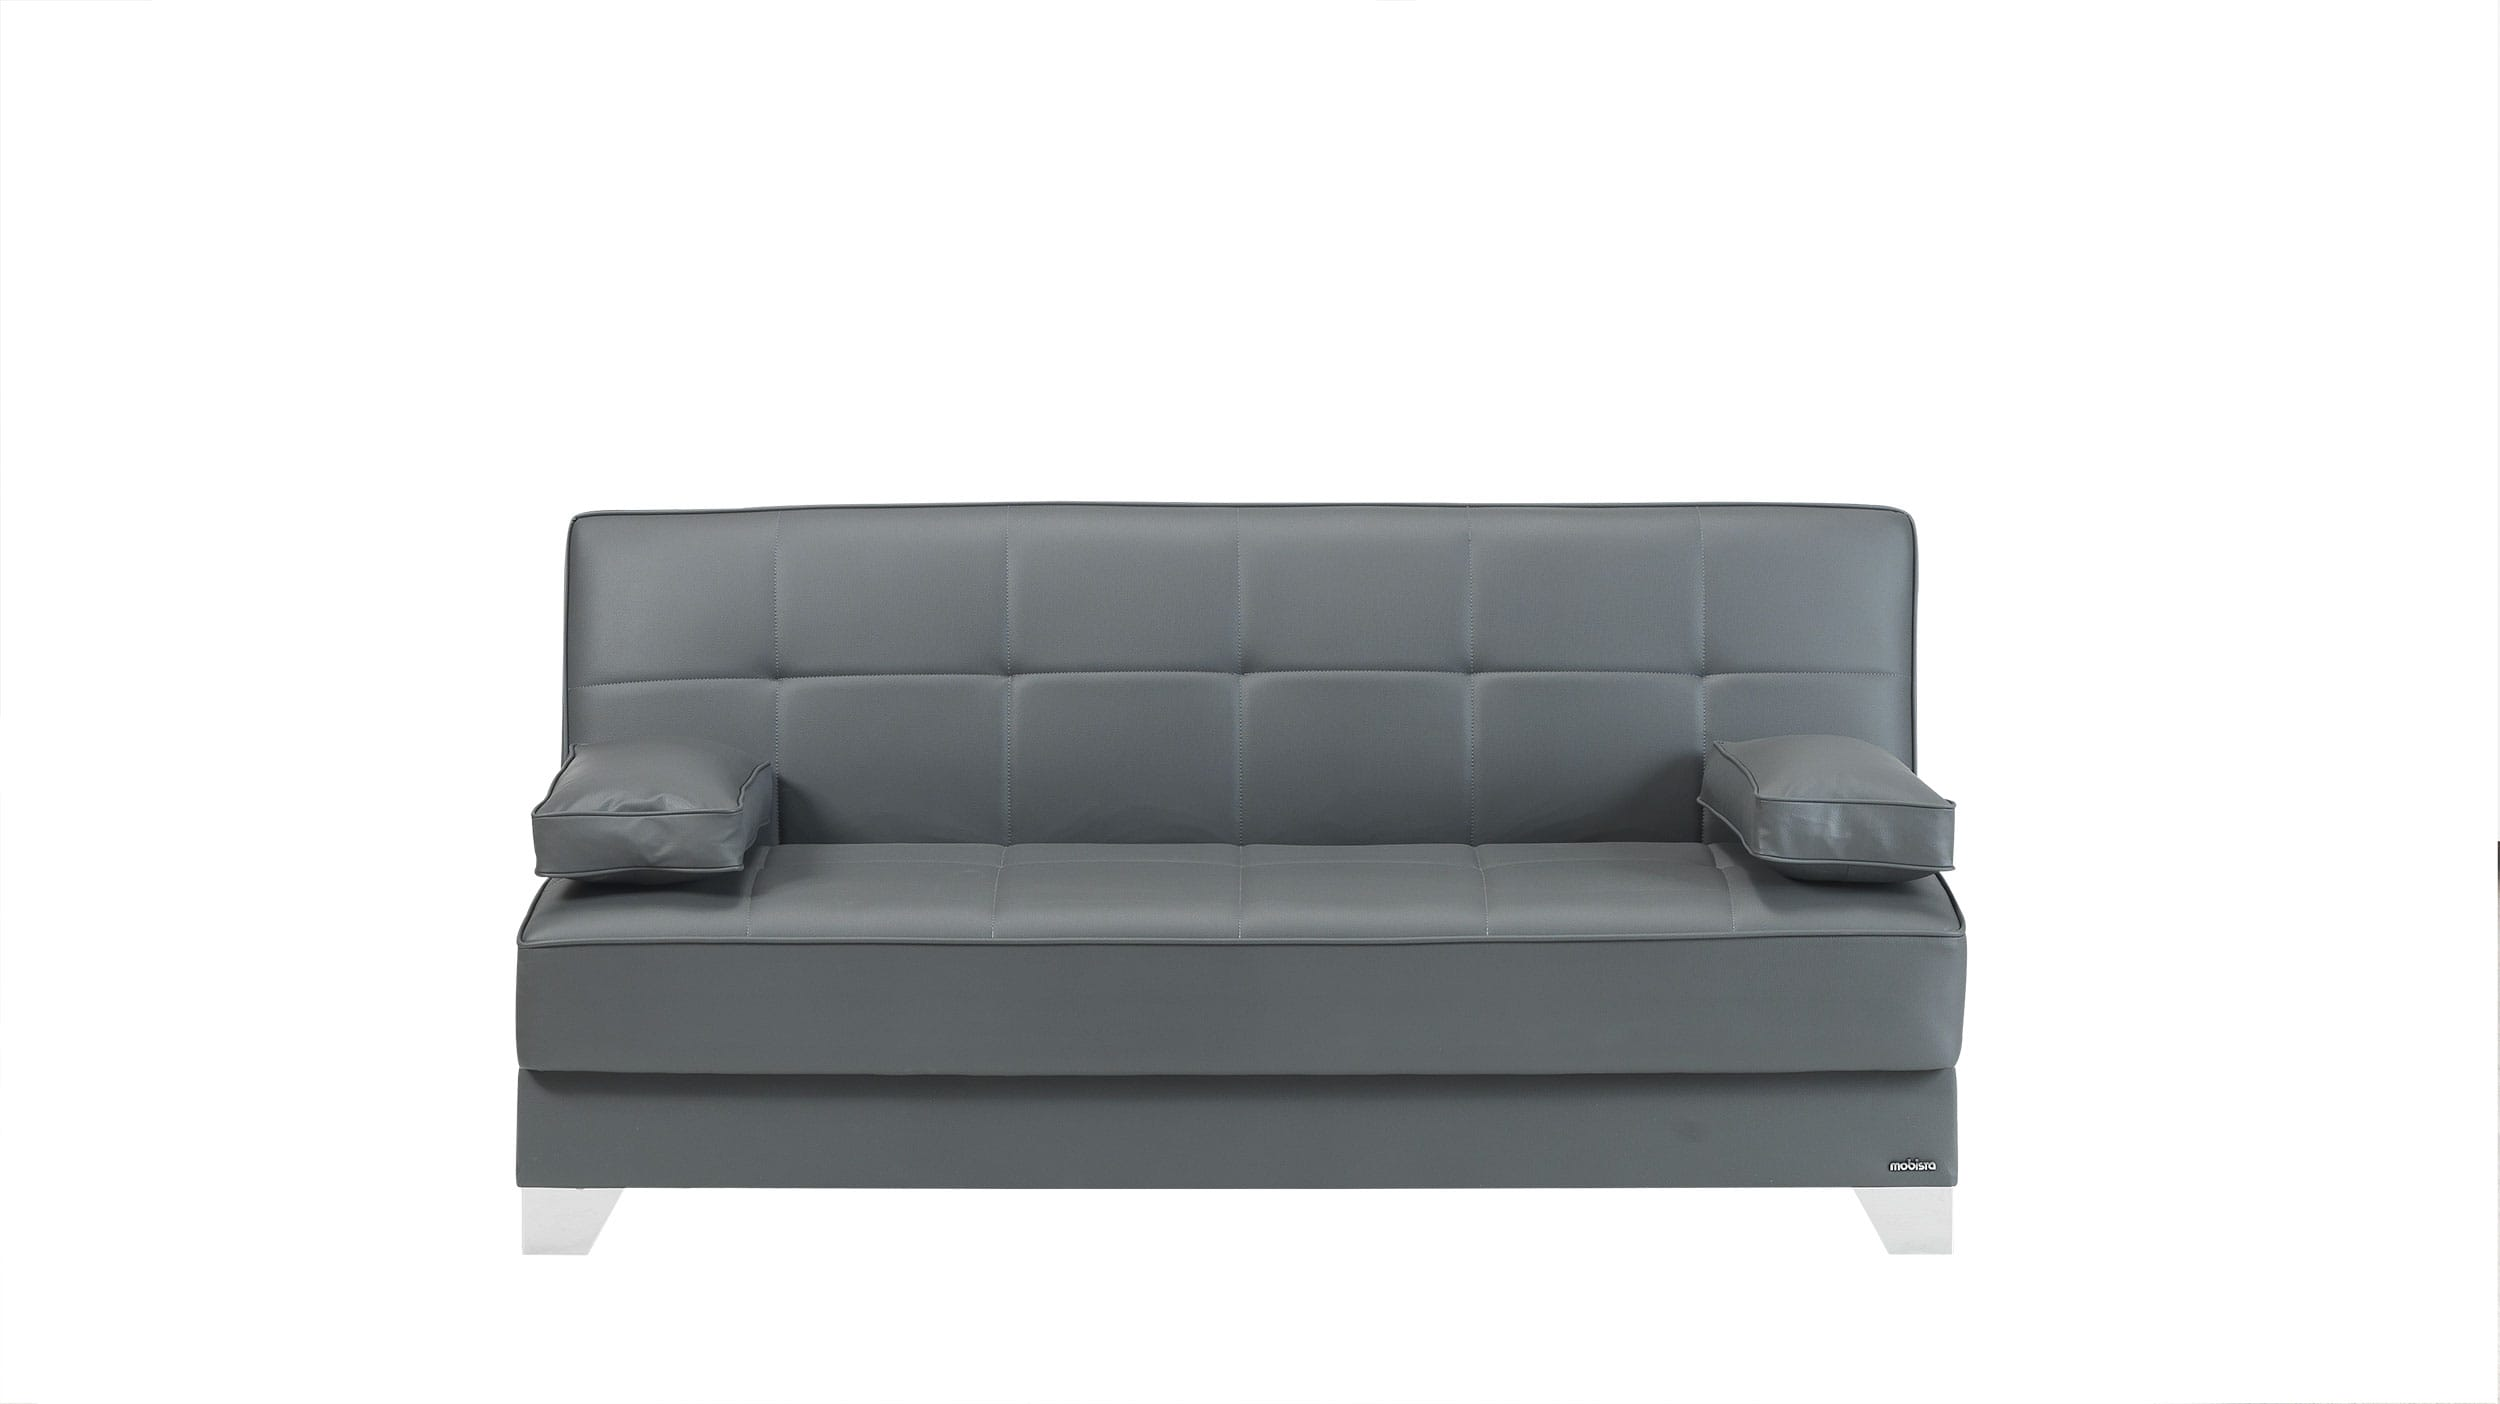 tribeca nyc prestige dark gray sofa bed by mobista rh futonland com sofa bed disposal nyc sofa murphy bed nyc